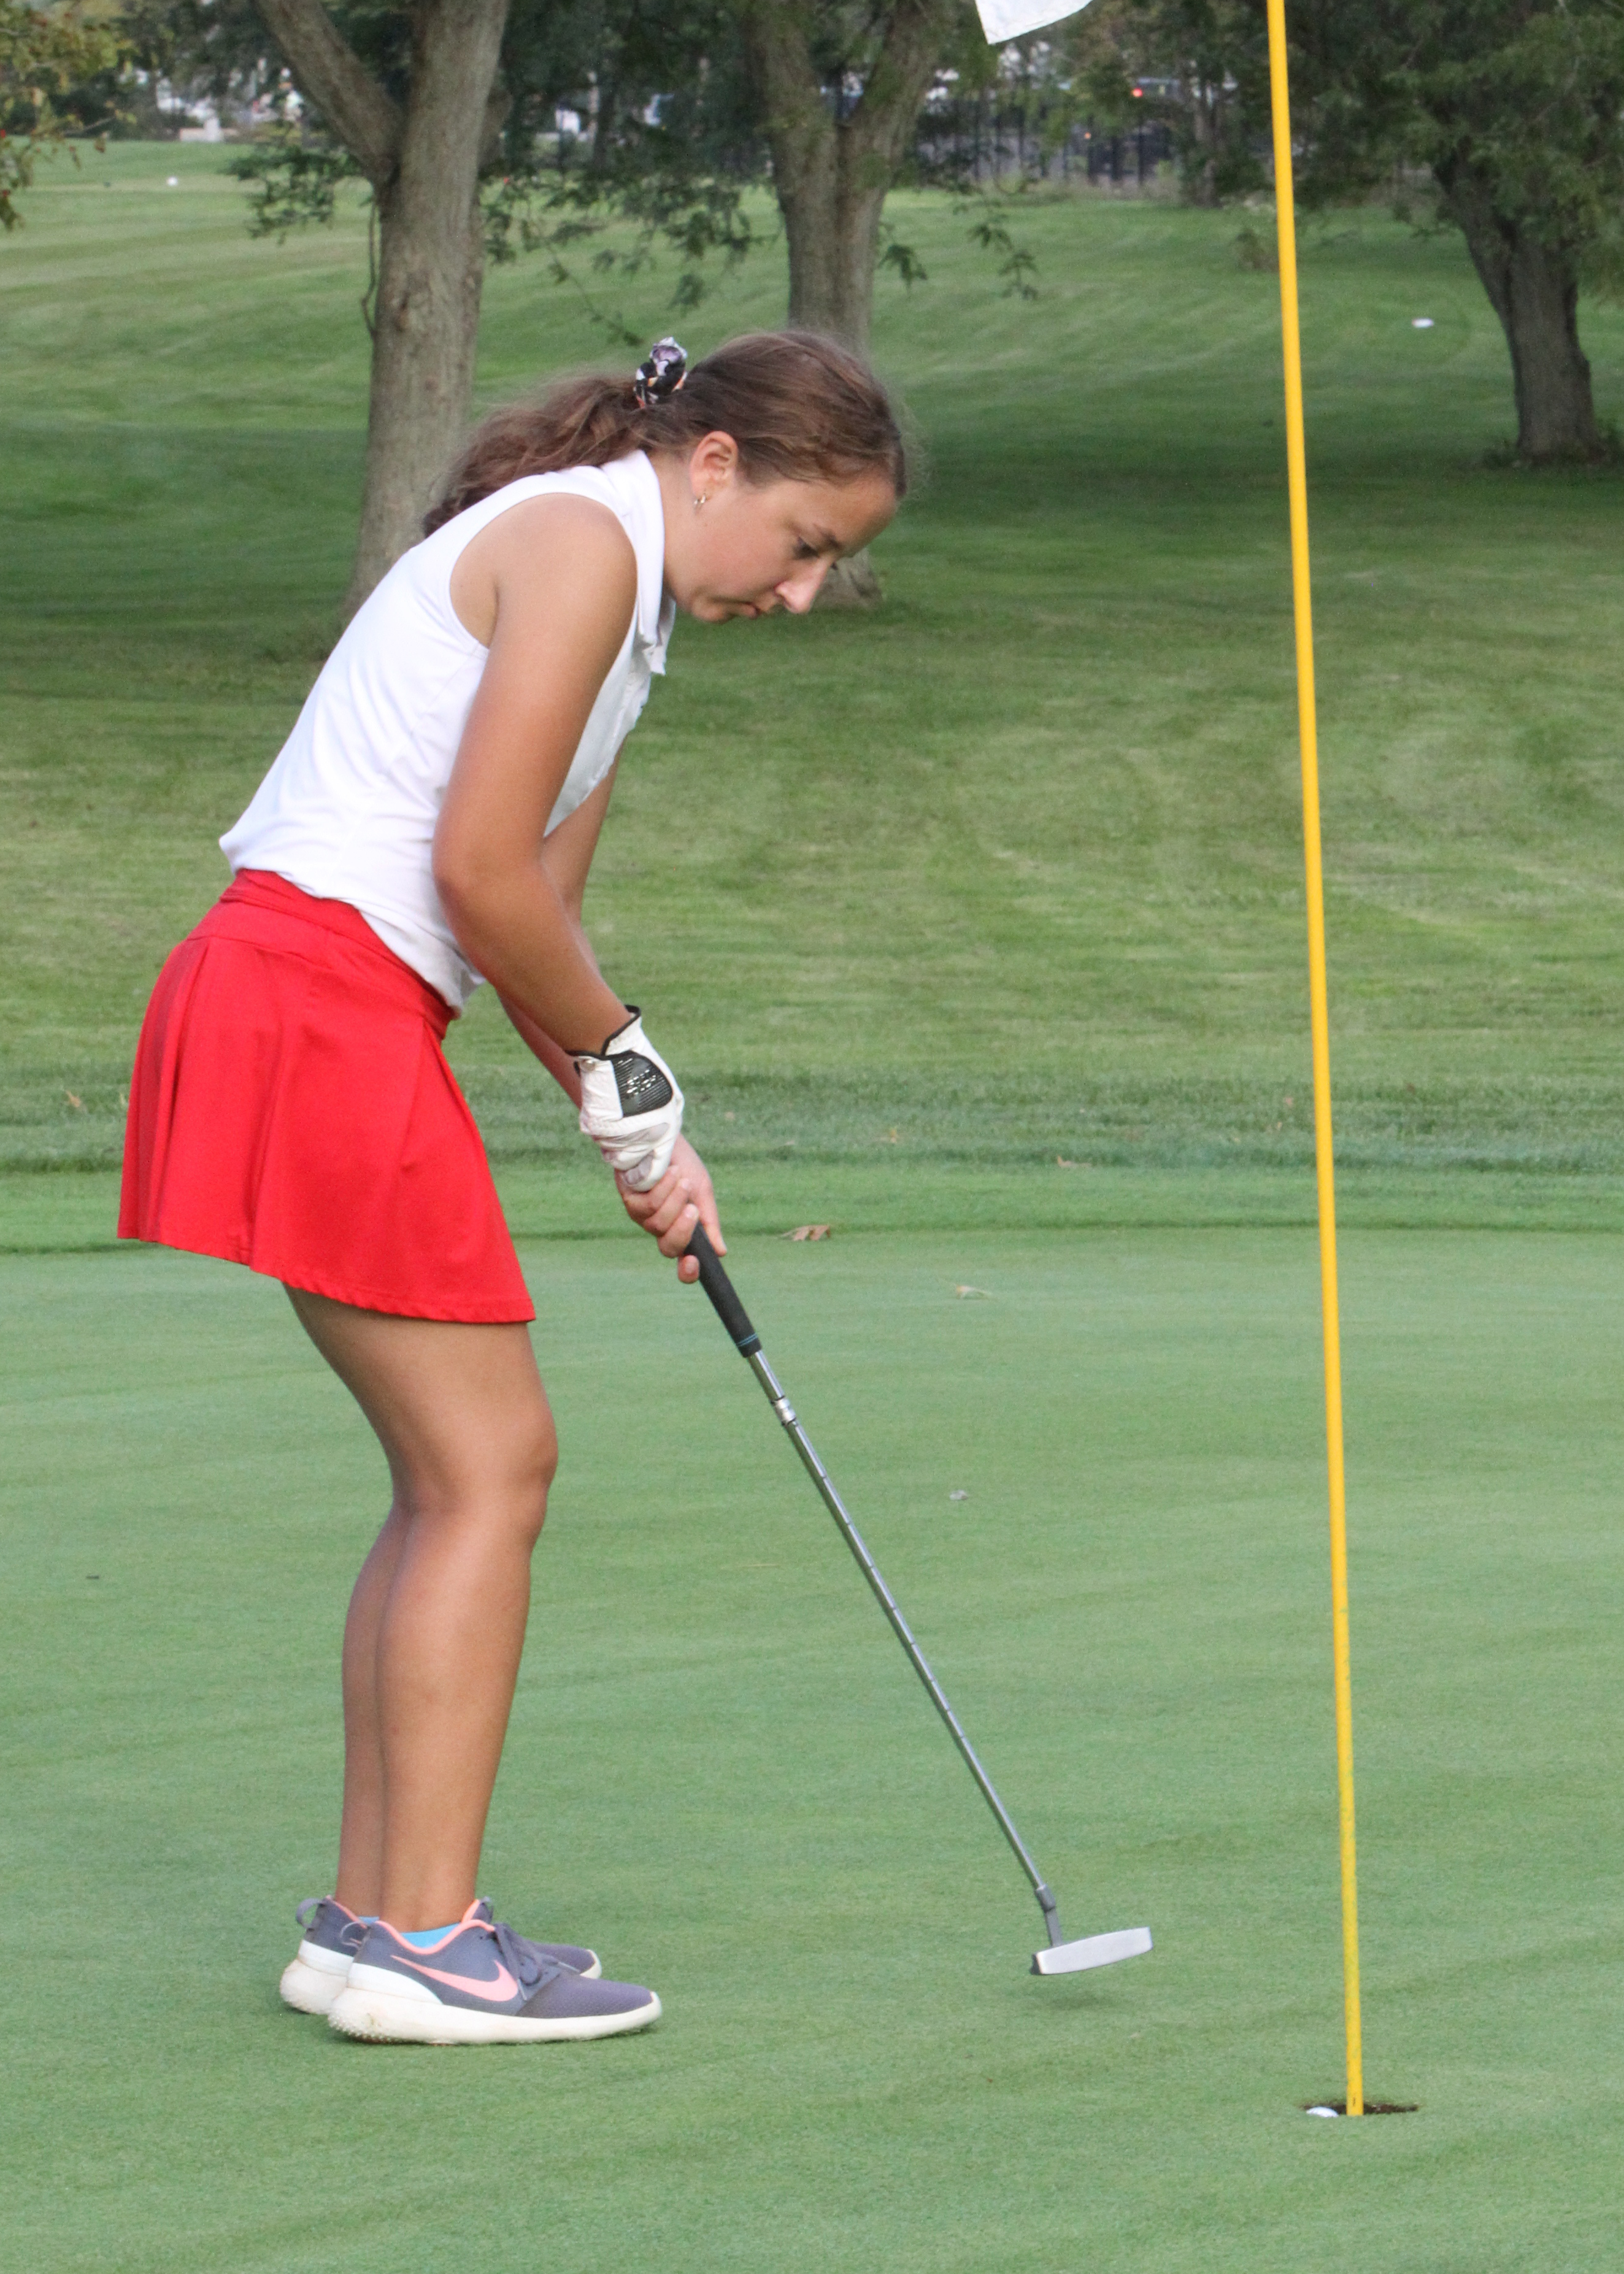 Carley Rodenbeck shot a school record 37 on September 5 (photo Kim Sheehan)